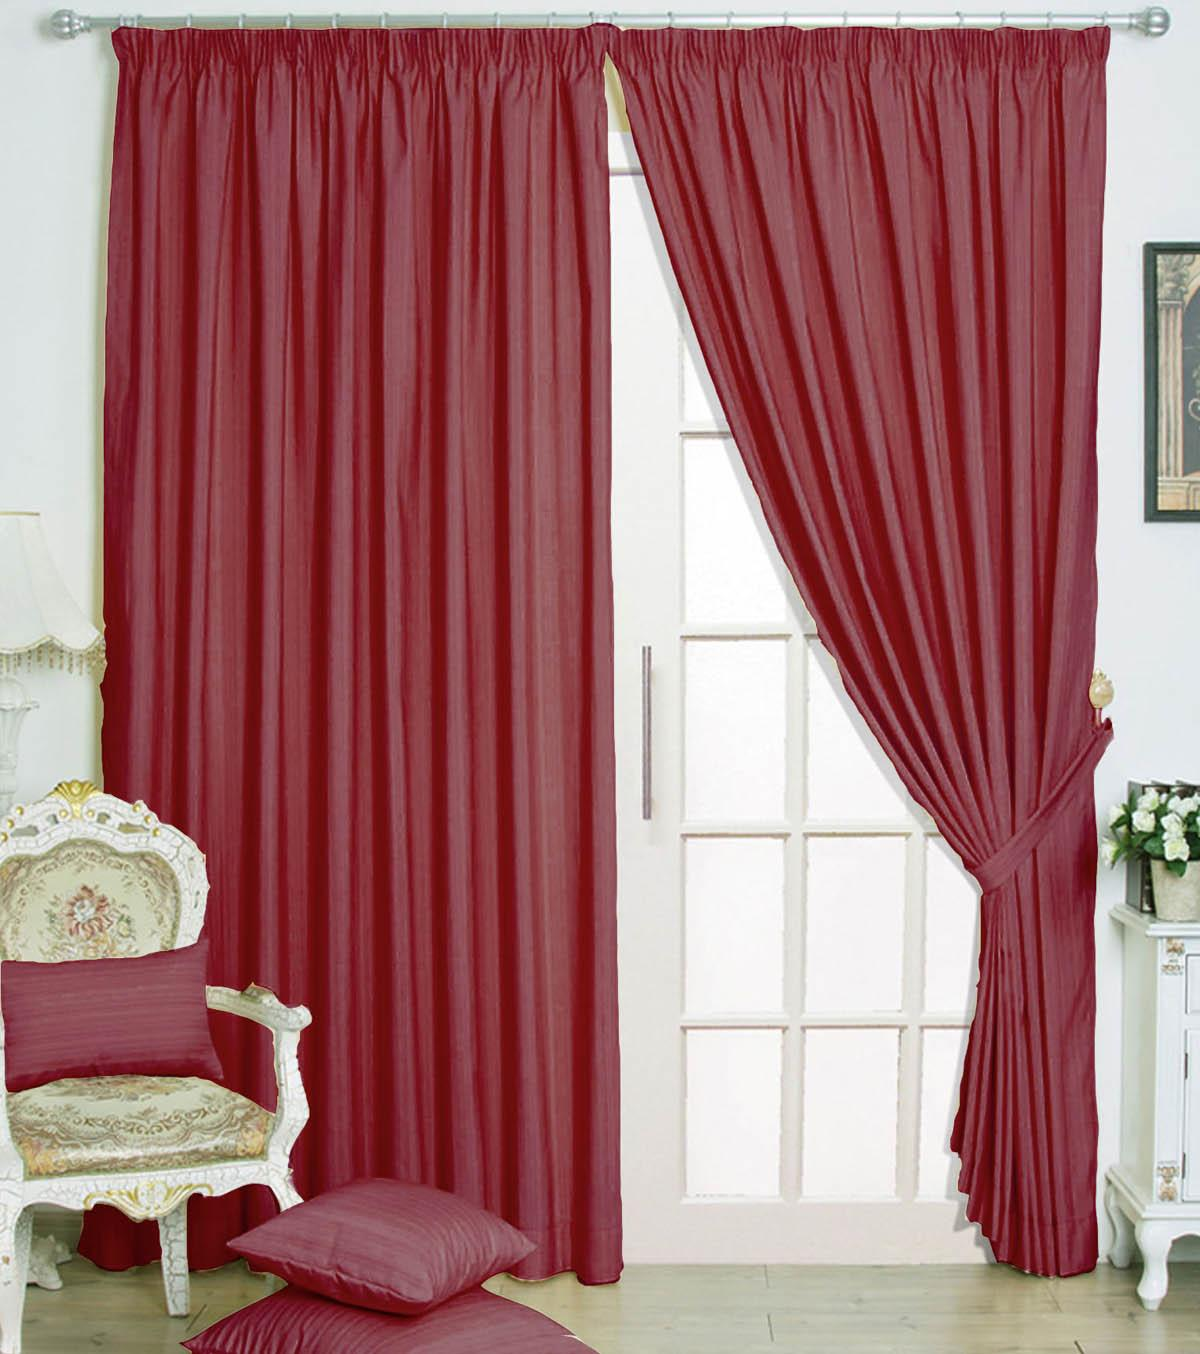 Black eclipse curtains